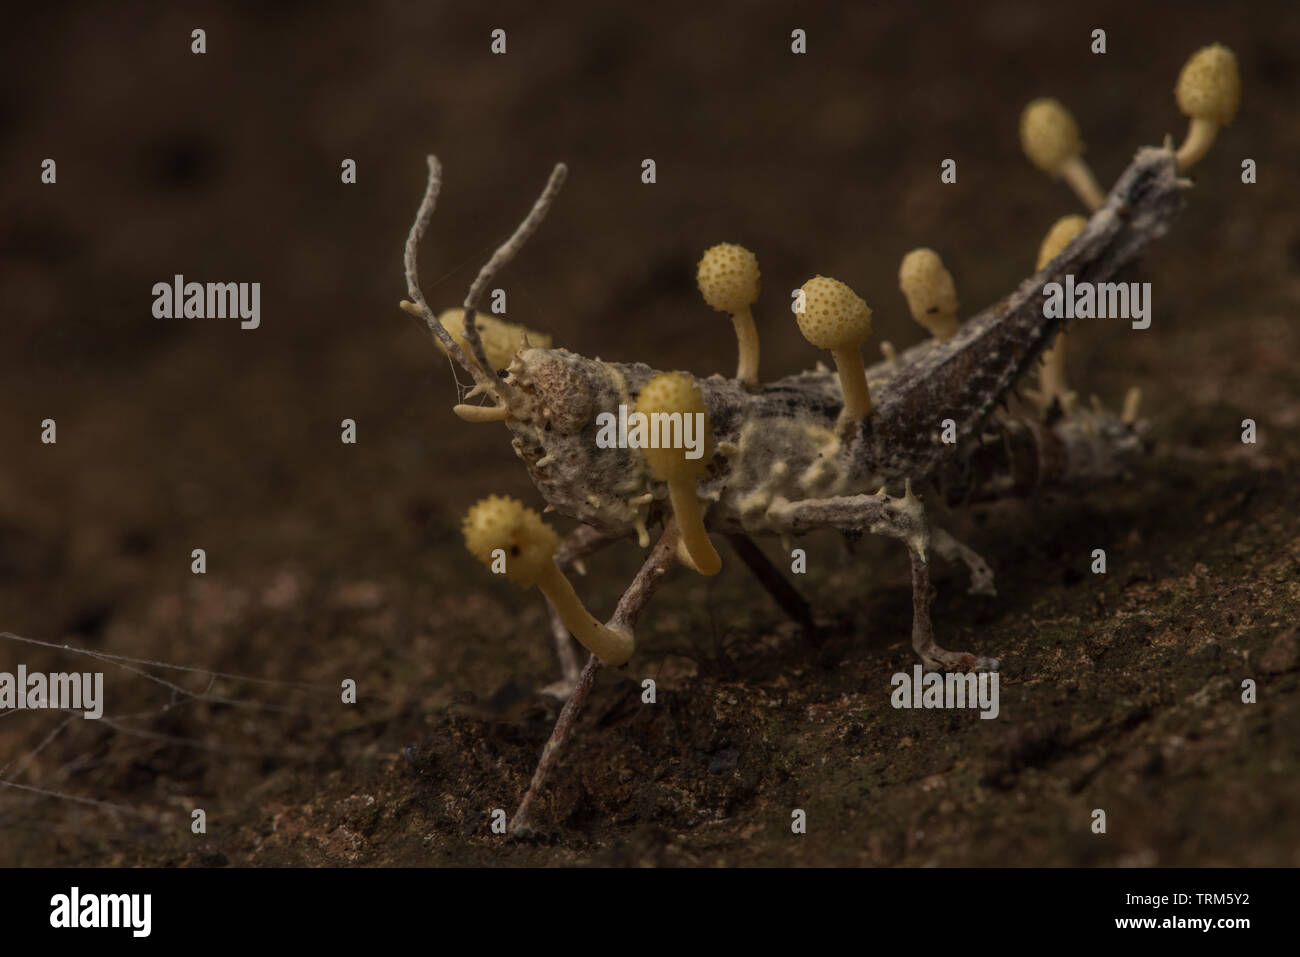 A grasshopper which has been killed by an entomopathogenic fungus, also known as cordyceps, in the Amazon jungle. - Stock Image